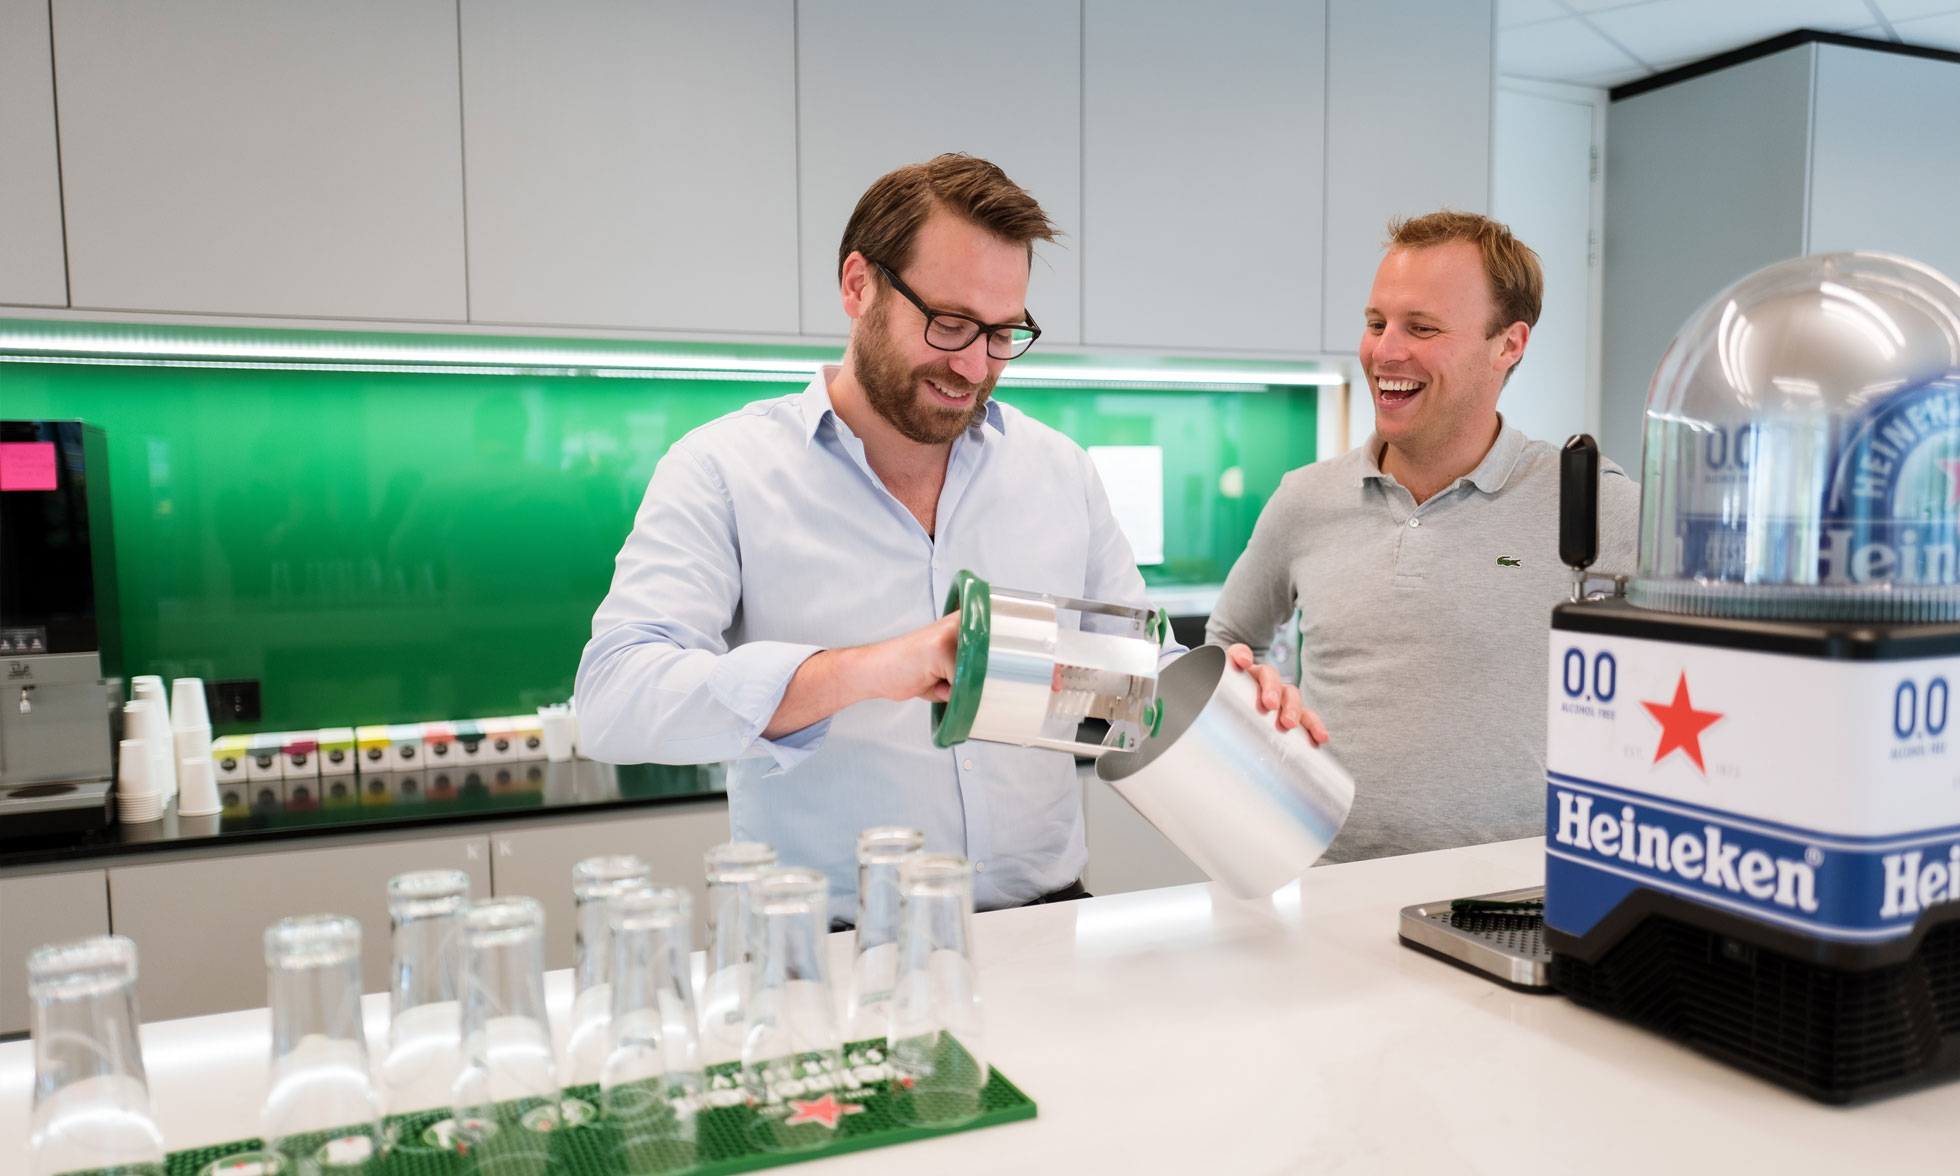 Two smiling men put together an accessory for the Heineken BLADE